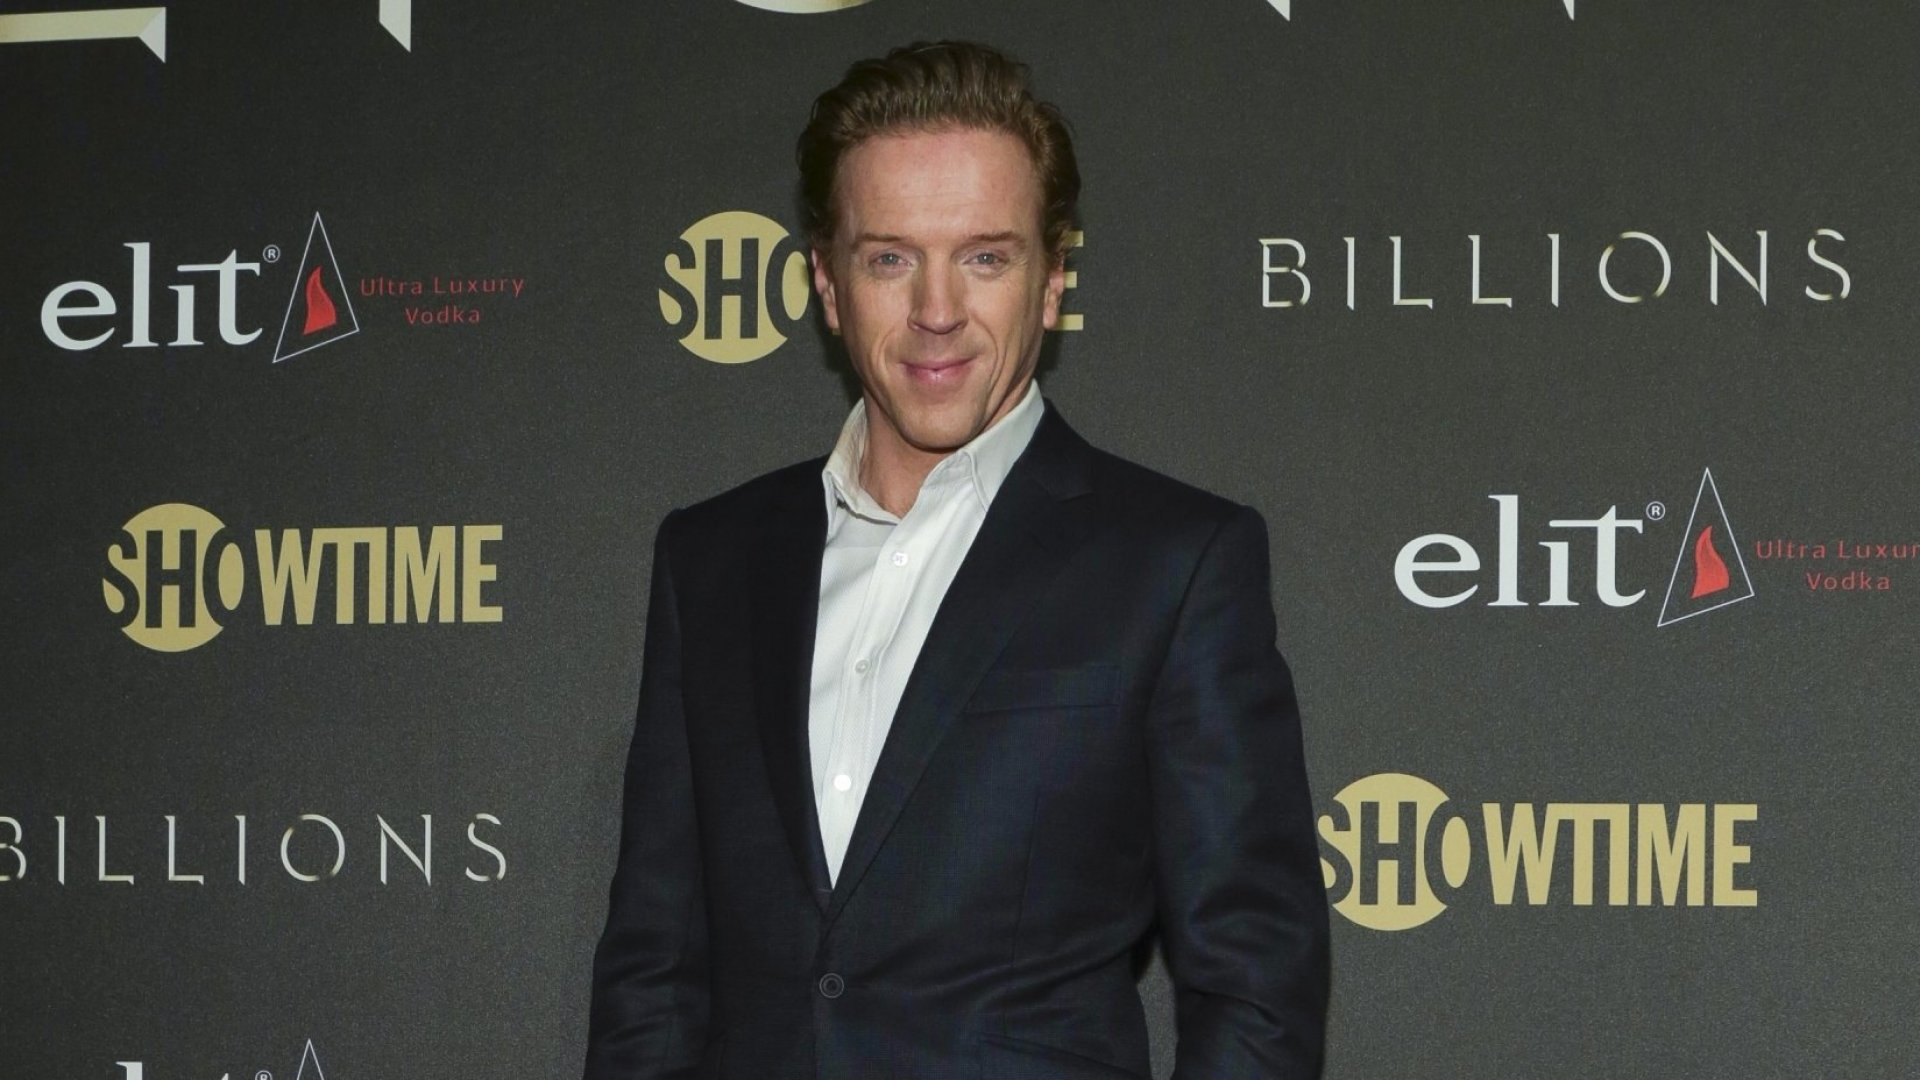 The Unexpected Powerful Business Lesson We Can Learn From the TV Show 'Billions'